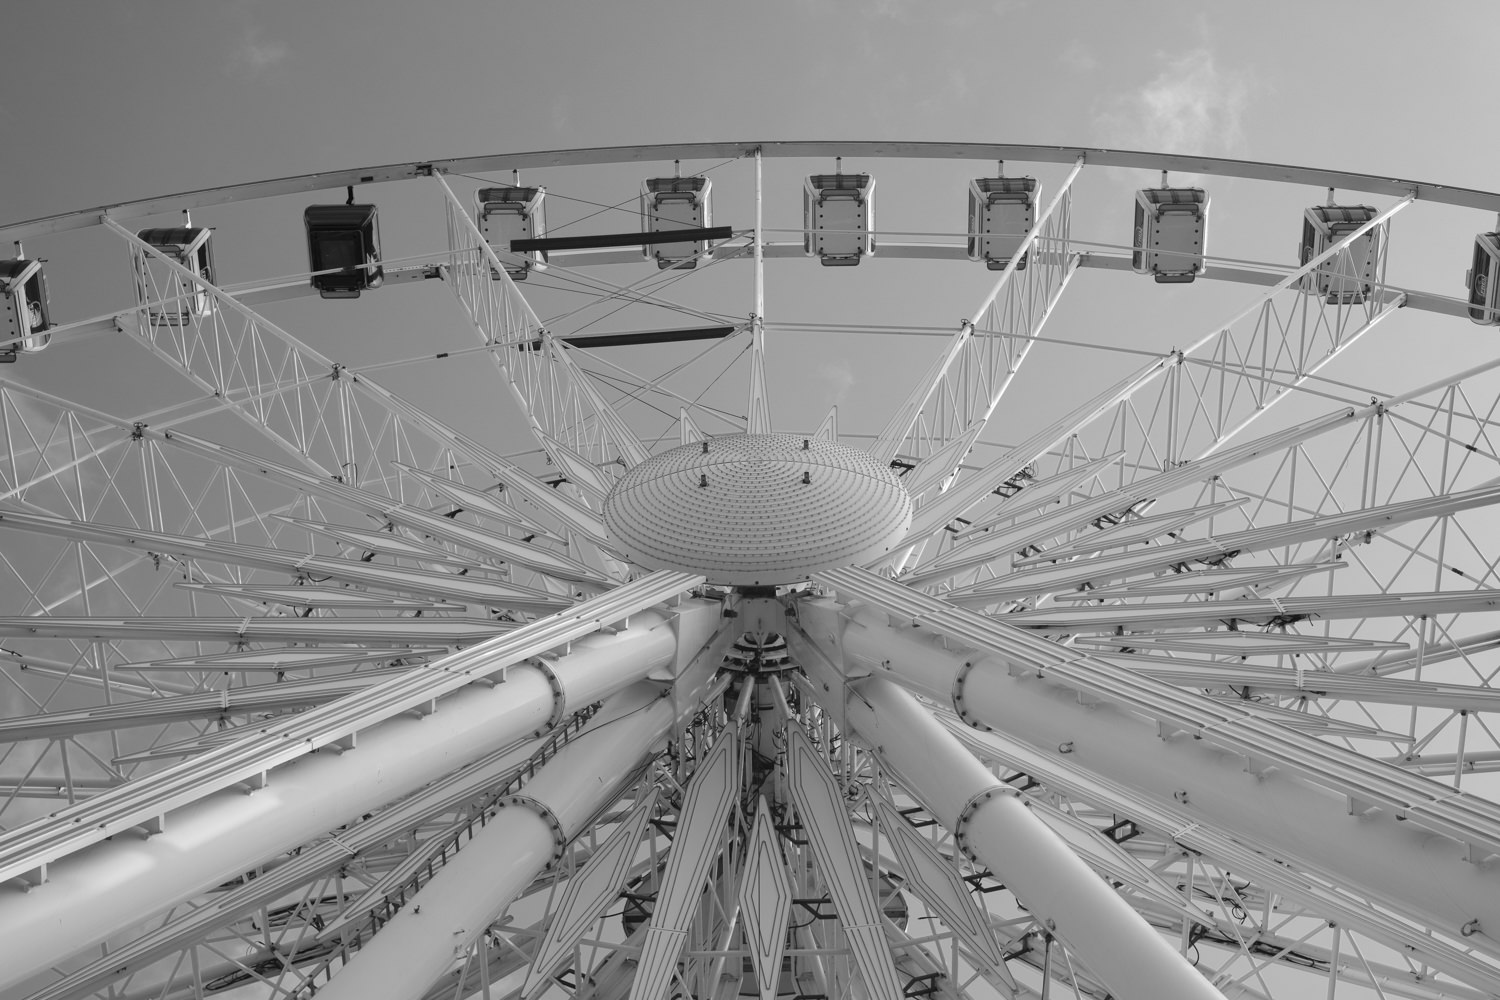 Looking up at the Liverpool Eye from the base.